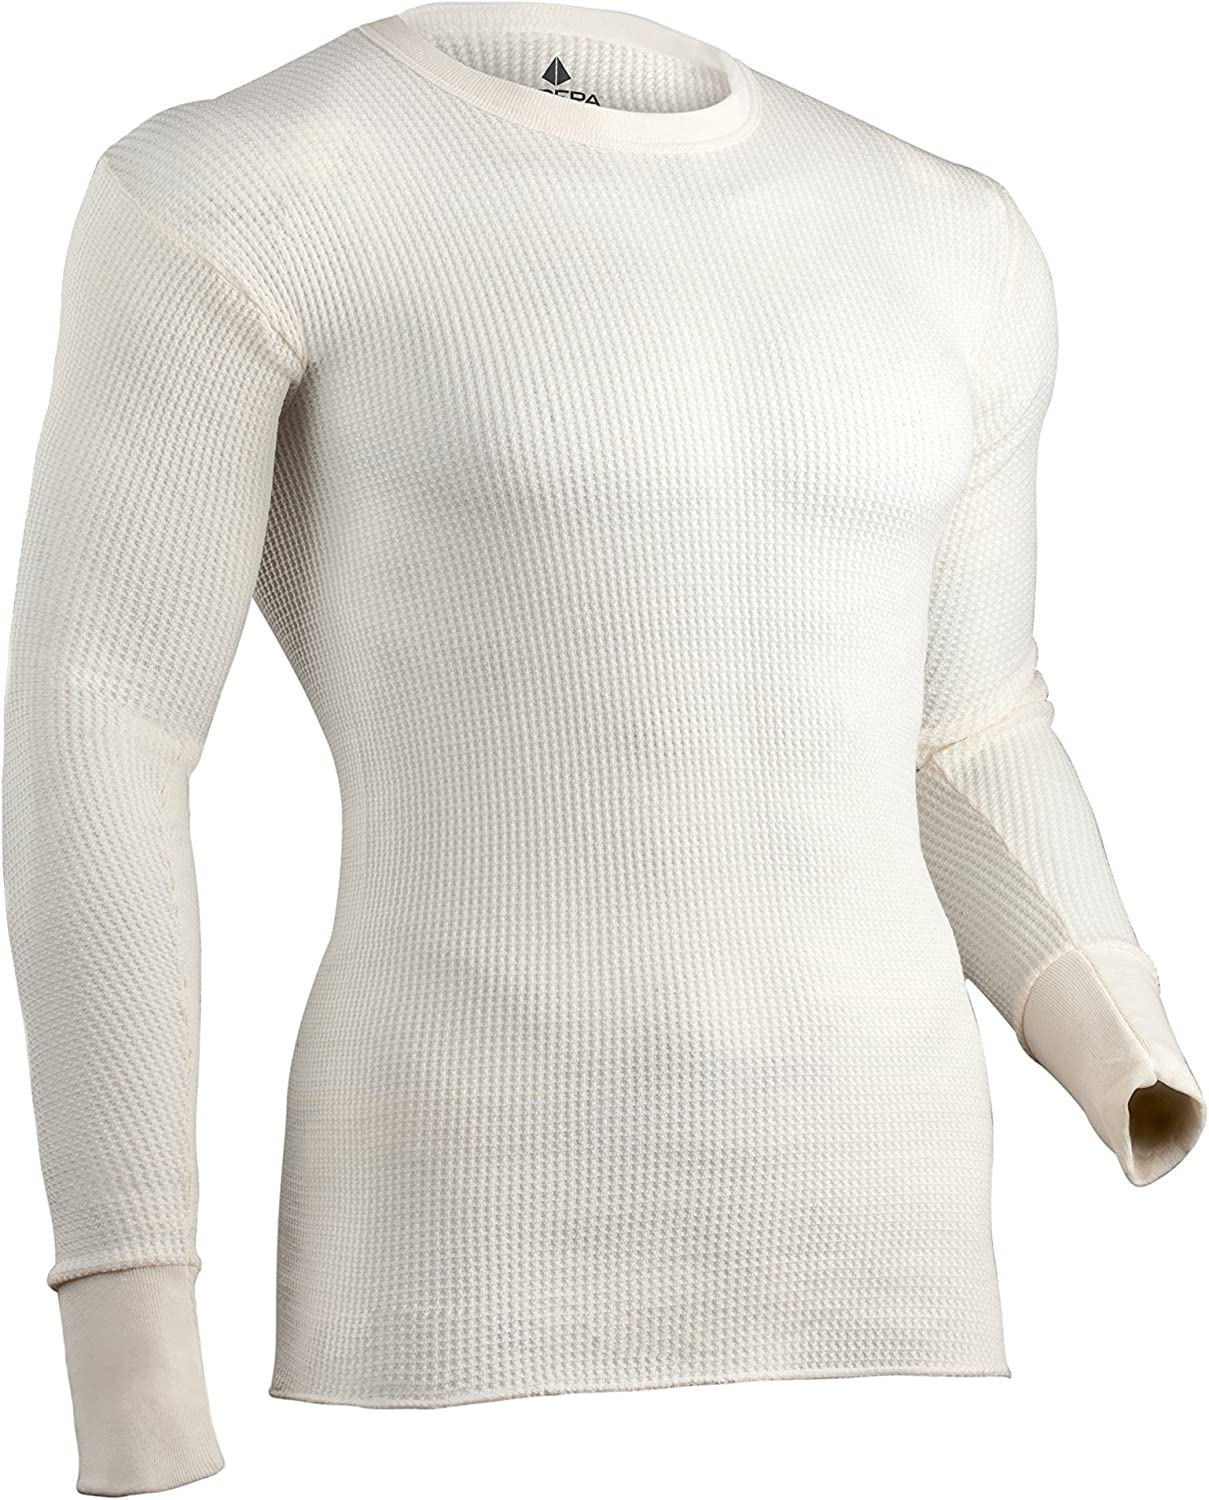 Indera Mens Tall Traditional Long Johns Thermal Underwear Top